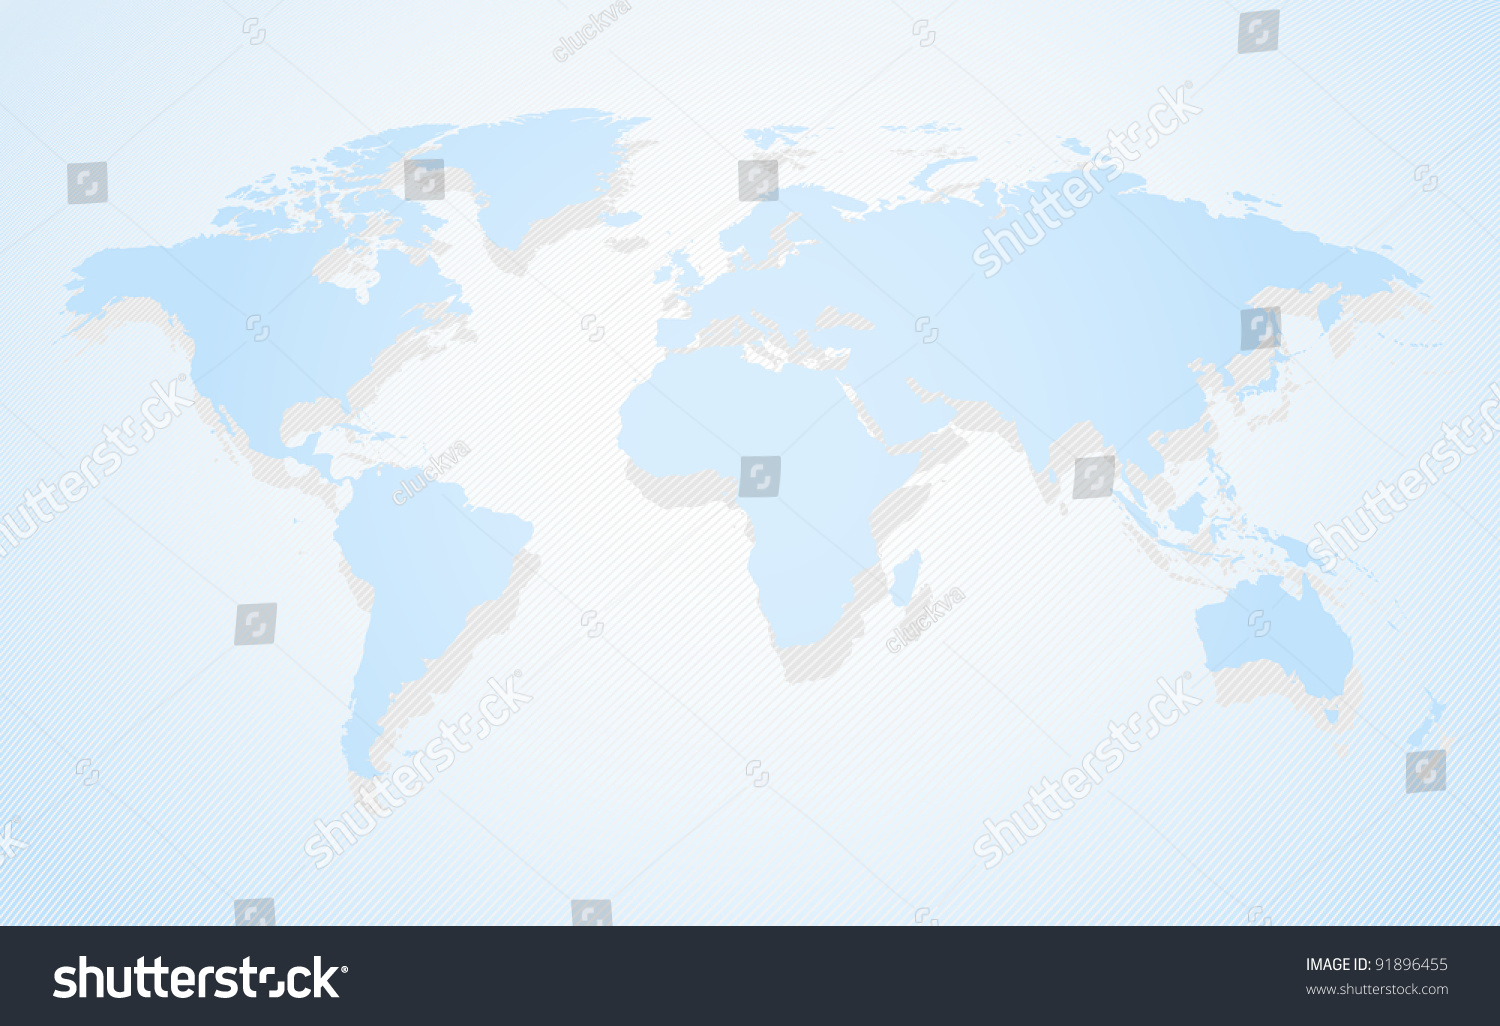 Blue business world map perspective view vectores en stock 91896455 blue business world map a perspective view and shadow gumiabroncs Images